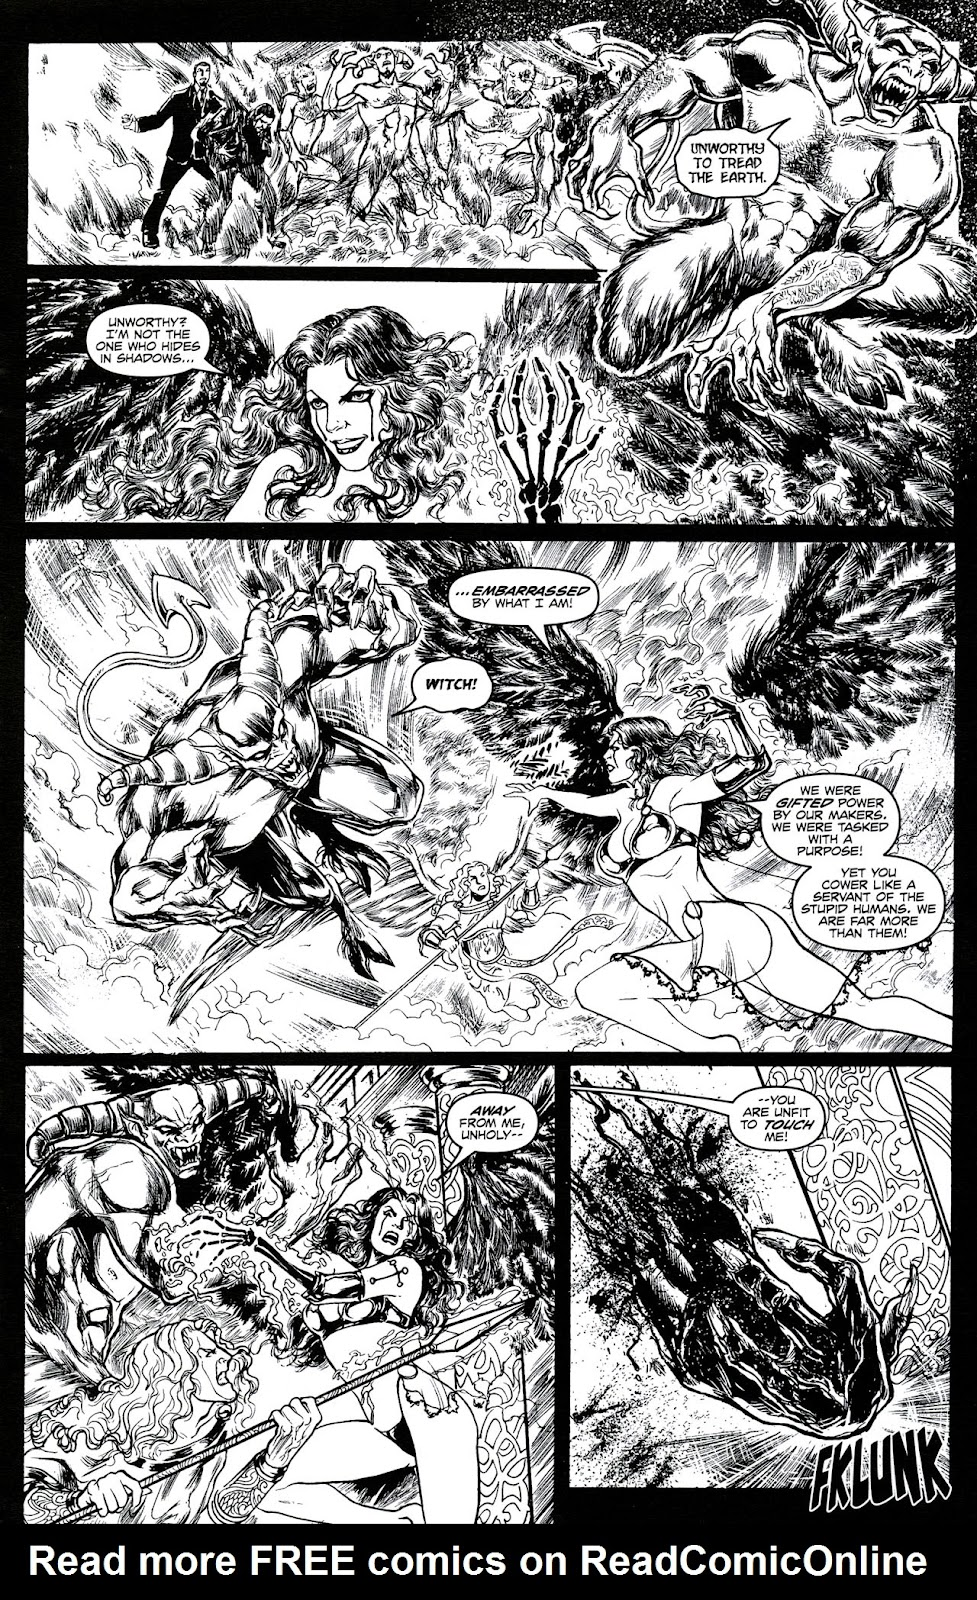 Read online Brian Pulido's War Angel comic -  Issue #0 - 18